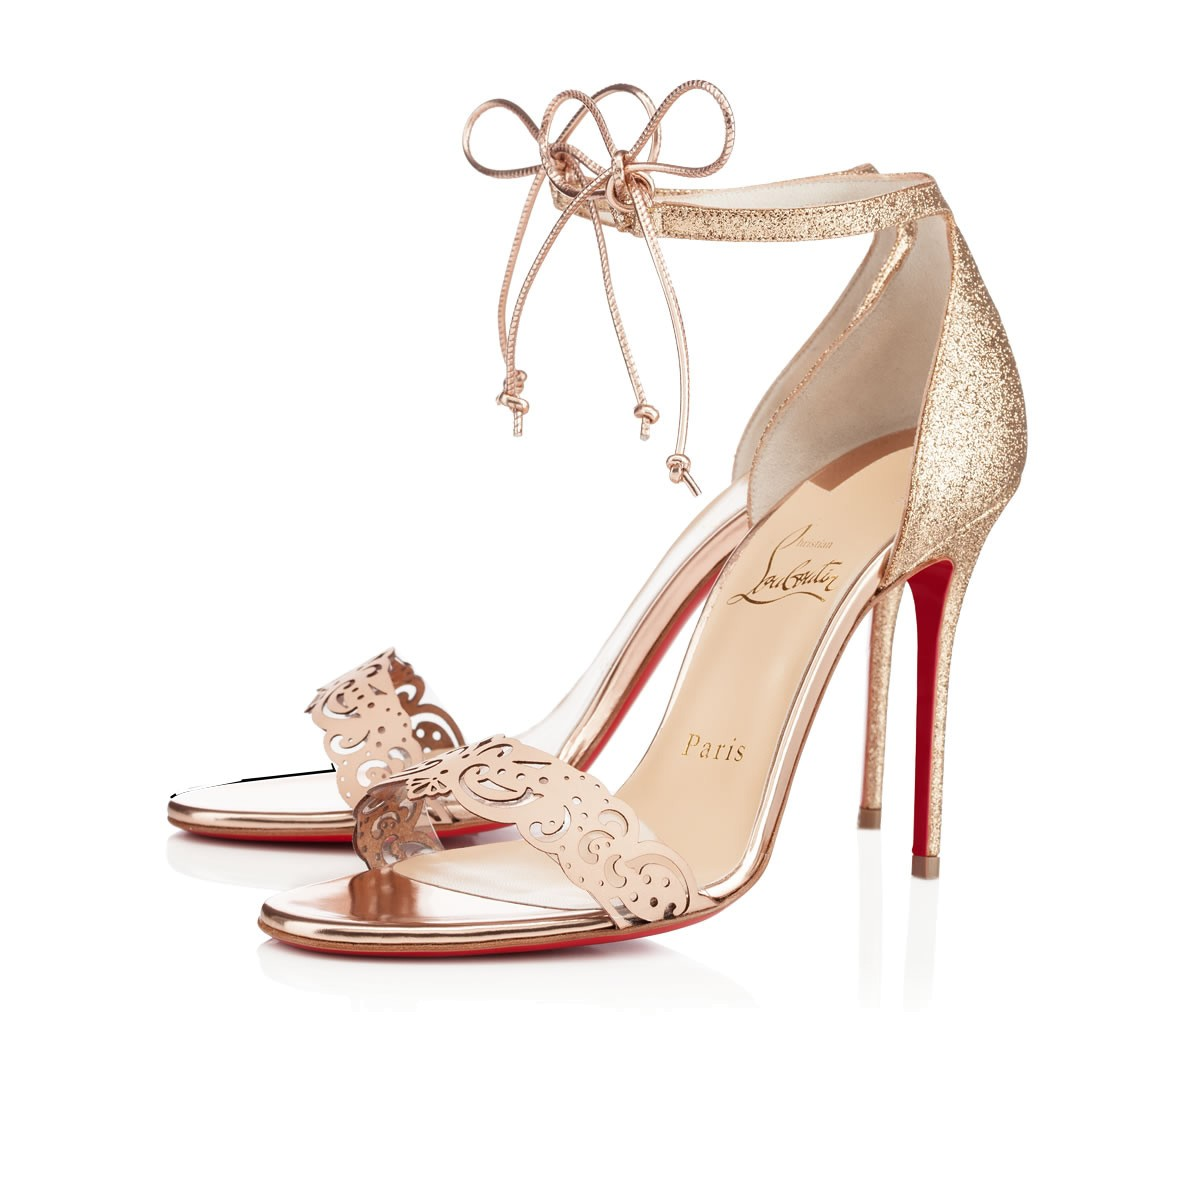 Wedding Shoes 101 Everything You Need To Know To Shop For The Perfect Pair